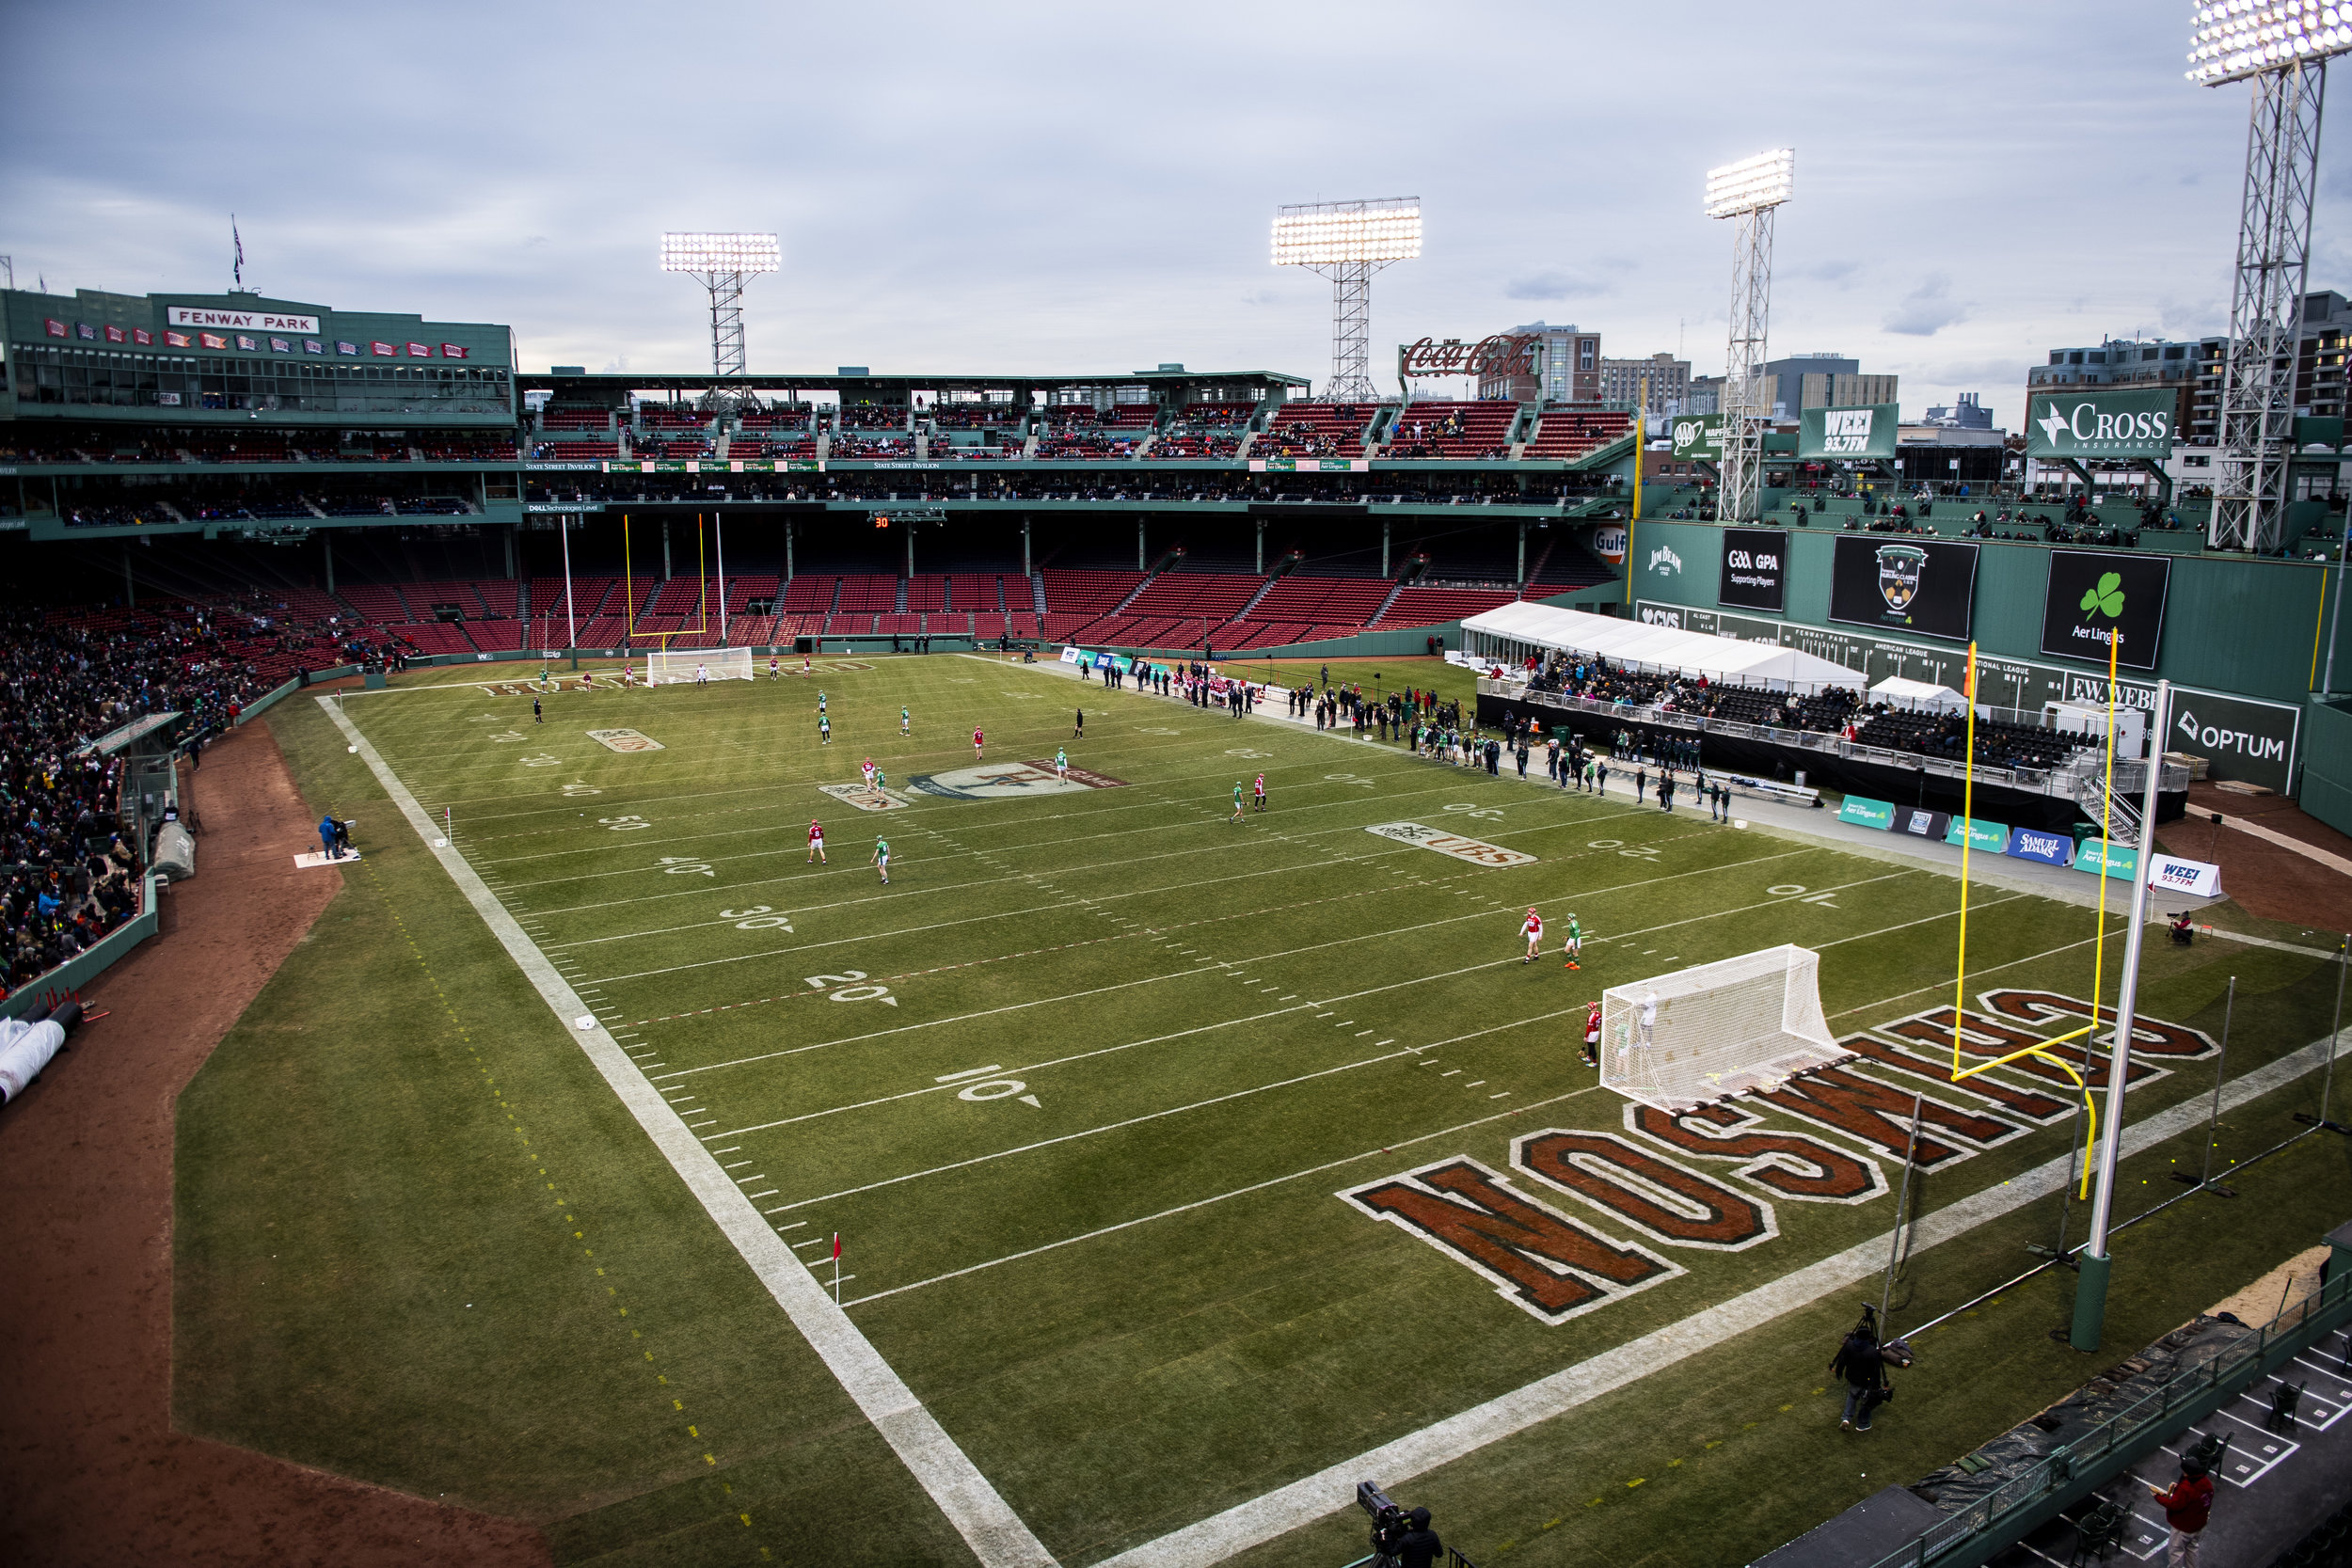 November 18, 2018, Boston, MA: Cork faces Limerick in the Championship match during the Fenway Hurling Classic at Fenway Park in Boston, Massachusetts on Sunday, November 18, 2018. (Photo by Matthew Thomas/Boston Red Sox)